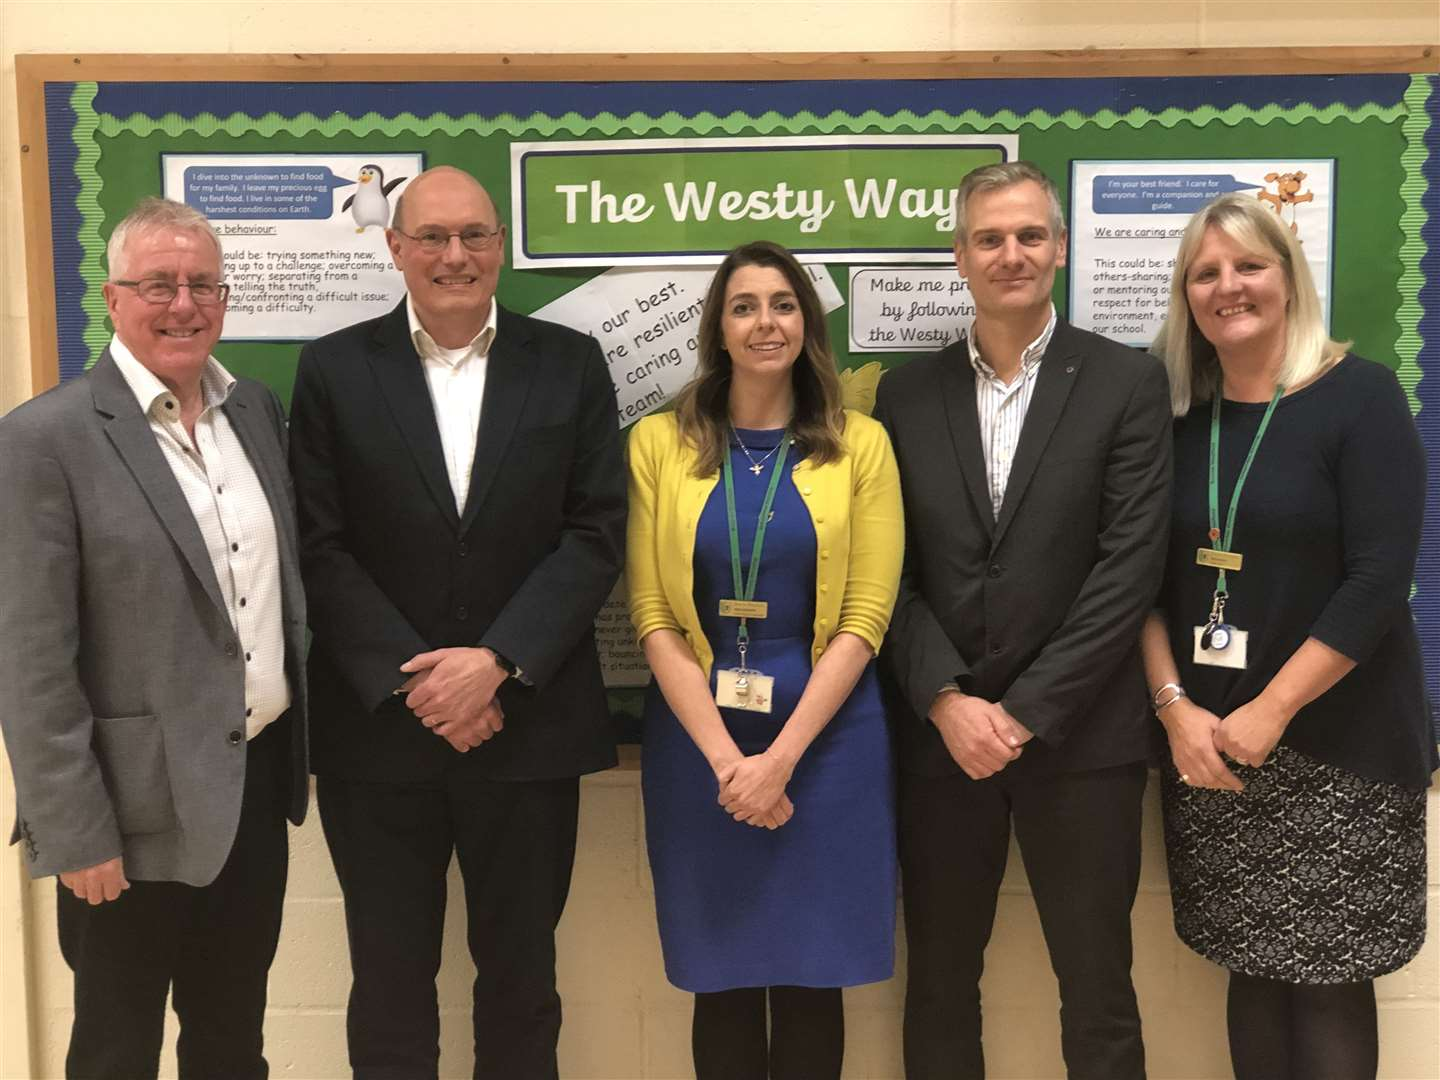 School governors with Elaine Radley (right), executive head teacher of Bourne Westfield Primary Academy, where Keystone Academy Trust is based.